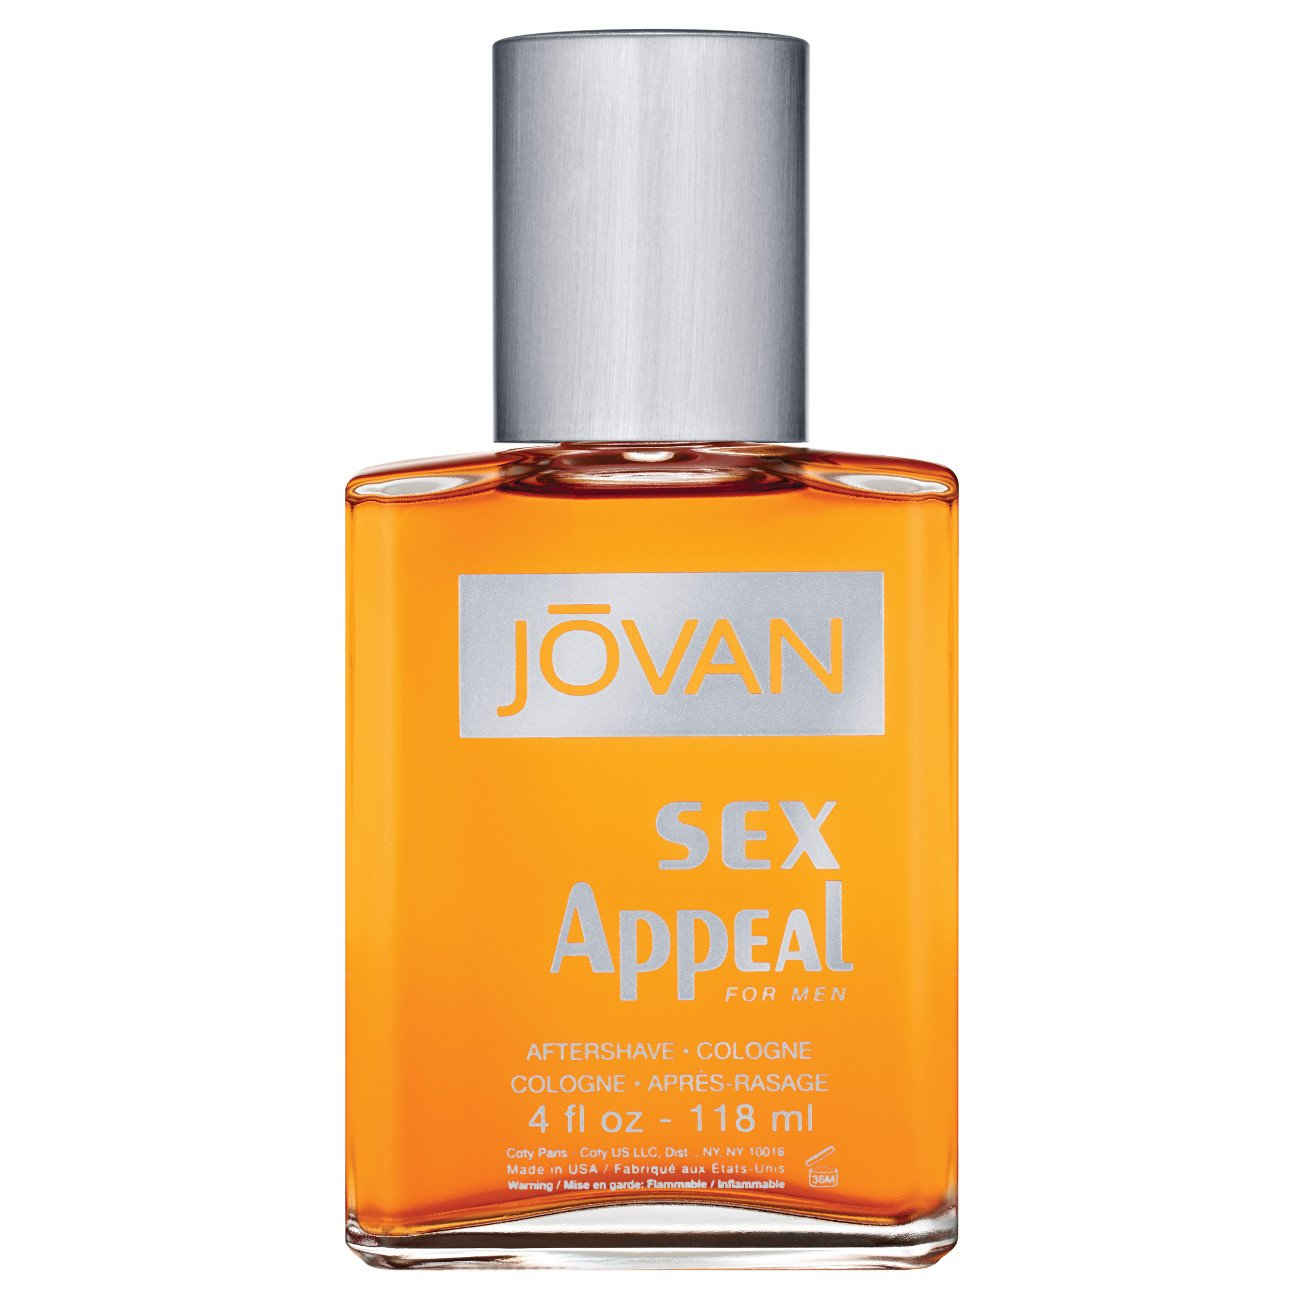 Jovan Musk for Men, After Shave Cologne, Sex Appeal, 8 fl. oz., Men's Fragrance with Musk, Spicy, Earthy & Woody, A Sexually Appealing & Attractive Spray On Scent That Makes a Great Gift.